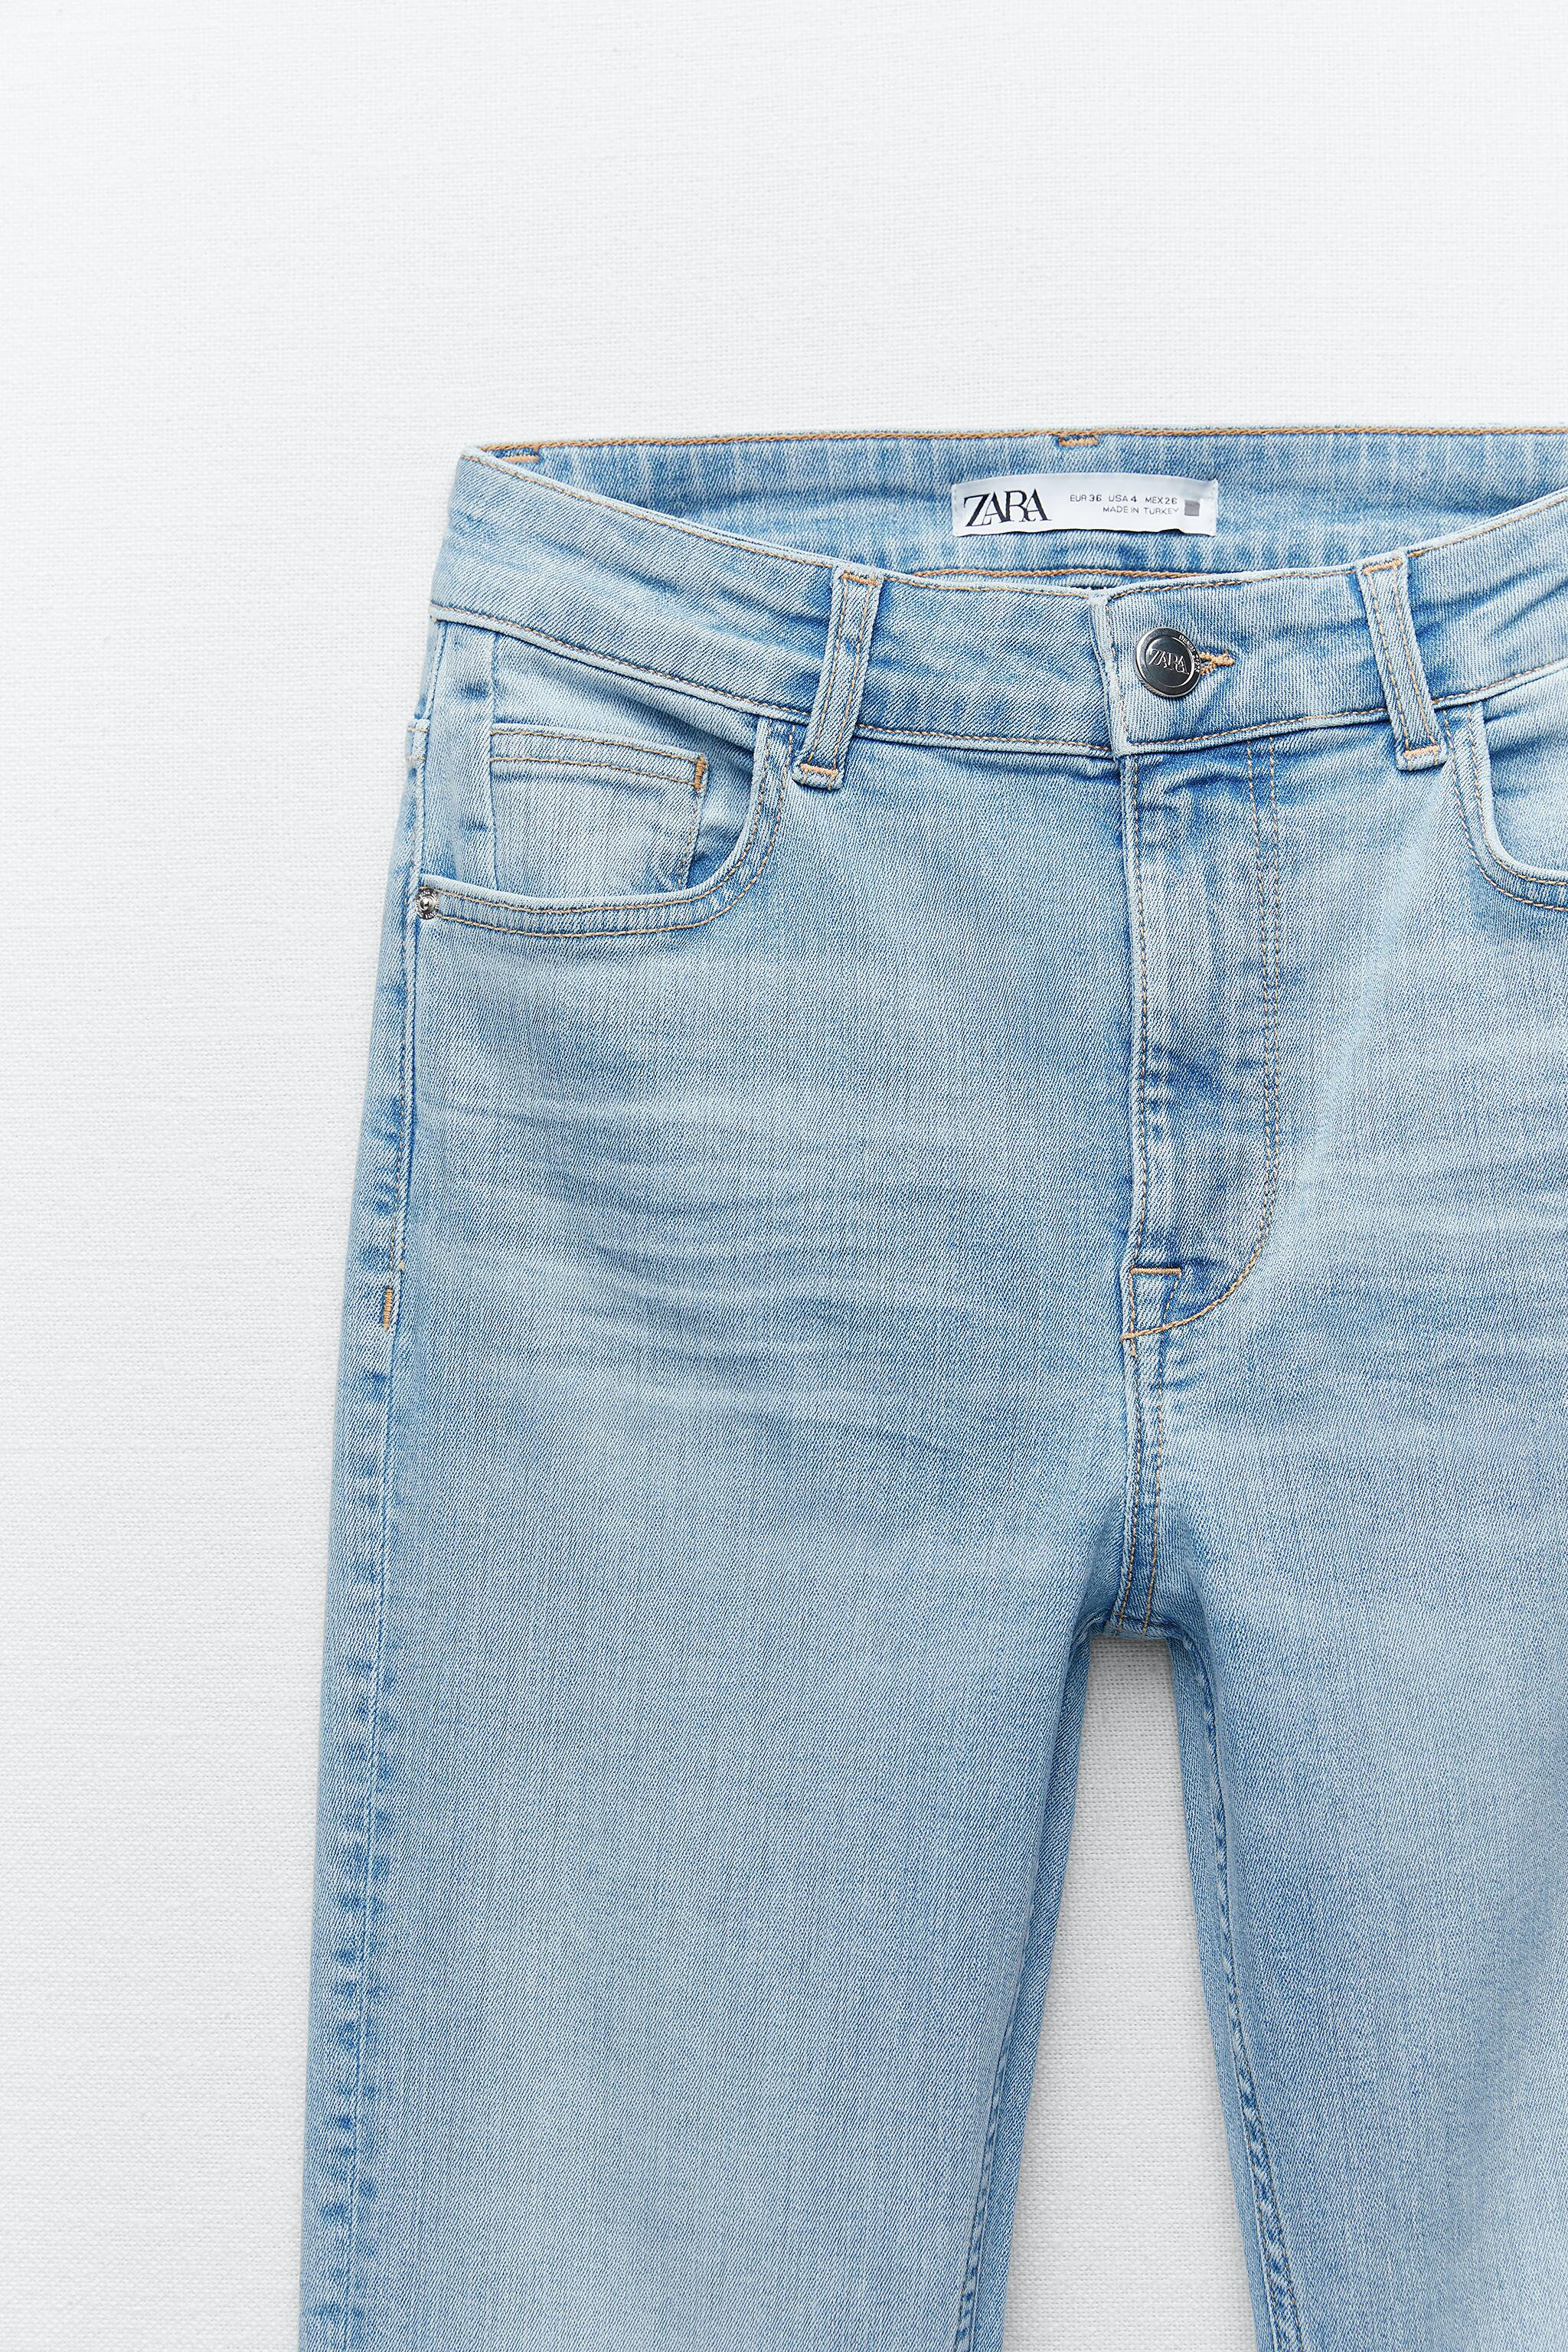 Z1975 HIGH RISE FLARED JEANS 5